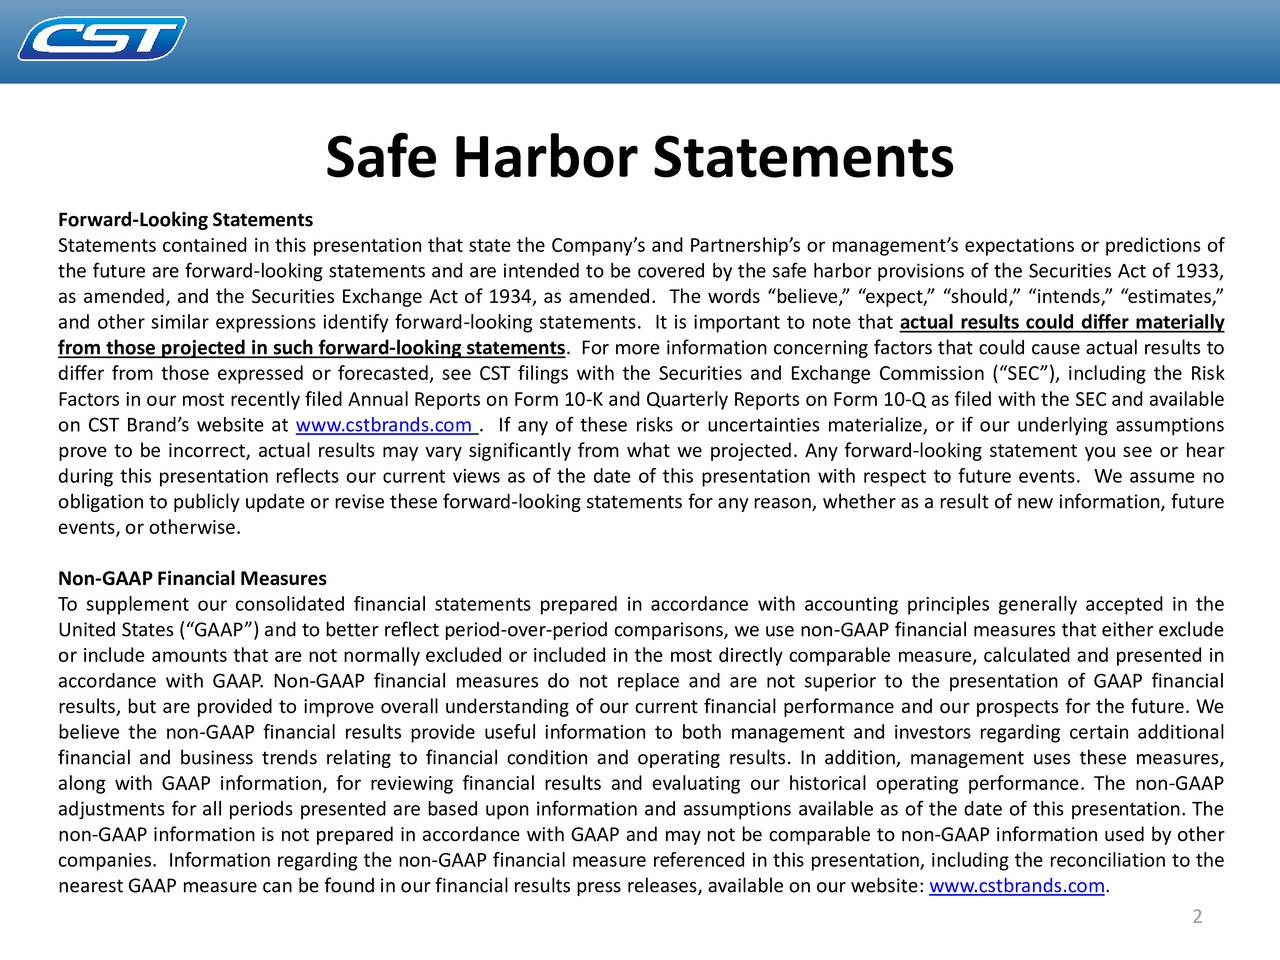 Forward-Looking Statements Statements contained in this presentation that state the Companys and Partnerships or managements expectations or predictions of the future are forward-looking statements and are intended to be covered by the safe harbor provisions of the Securities Act of 1933, as amended, and the Securities Exchange Act of 1934, as amended. The words believe, expect, should, intends, estimates, and other similar expressions identify forward-looking statements. It is important to note that actual results could differ materially from those projected in such forward-looking statements. For more information concerning factors that could cause actual results to differ from those expressed or forecasted, see CST filings with the Securities and Exchange Commission (SEC), including the Risk Factors in our most recently filed Annual Reports on Form 10-K and Quarterly Reports on Form 10-Q as filed with the SEC and available on CST Brands website at www.cstbrands.com . If any of these risks or uncertainties materialize, or if our underlying assumptions prove to be incorrect, actual results may vary significantly from what we projected. Any forward-looking statement you see or hear during this presentation reflects our current views as of the date of this presentation with respect to future events. We assume no obligation to publicly update or revise these forward-looking statements for any reason, whether as a result of new information, future events,or otherwise. Non-GAAPFinancial Measures To supplement our consolidated financial statements prepared in accordance with accounting principles generally accepted in the United States (GAAP) and to better reflect period-over-period comparisons, we use non-GAAP financial measures that either exclude or include amounts that are not normally excluded or included in the most directly comparable measure, calculated and presented in accordance with GAAP. Non-GAAP financial measures do not replace and are not superior to the p